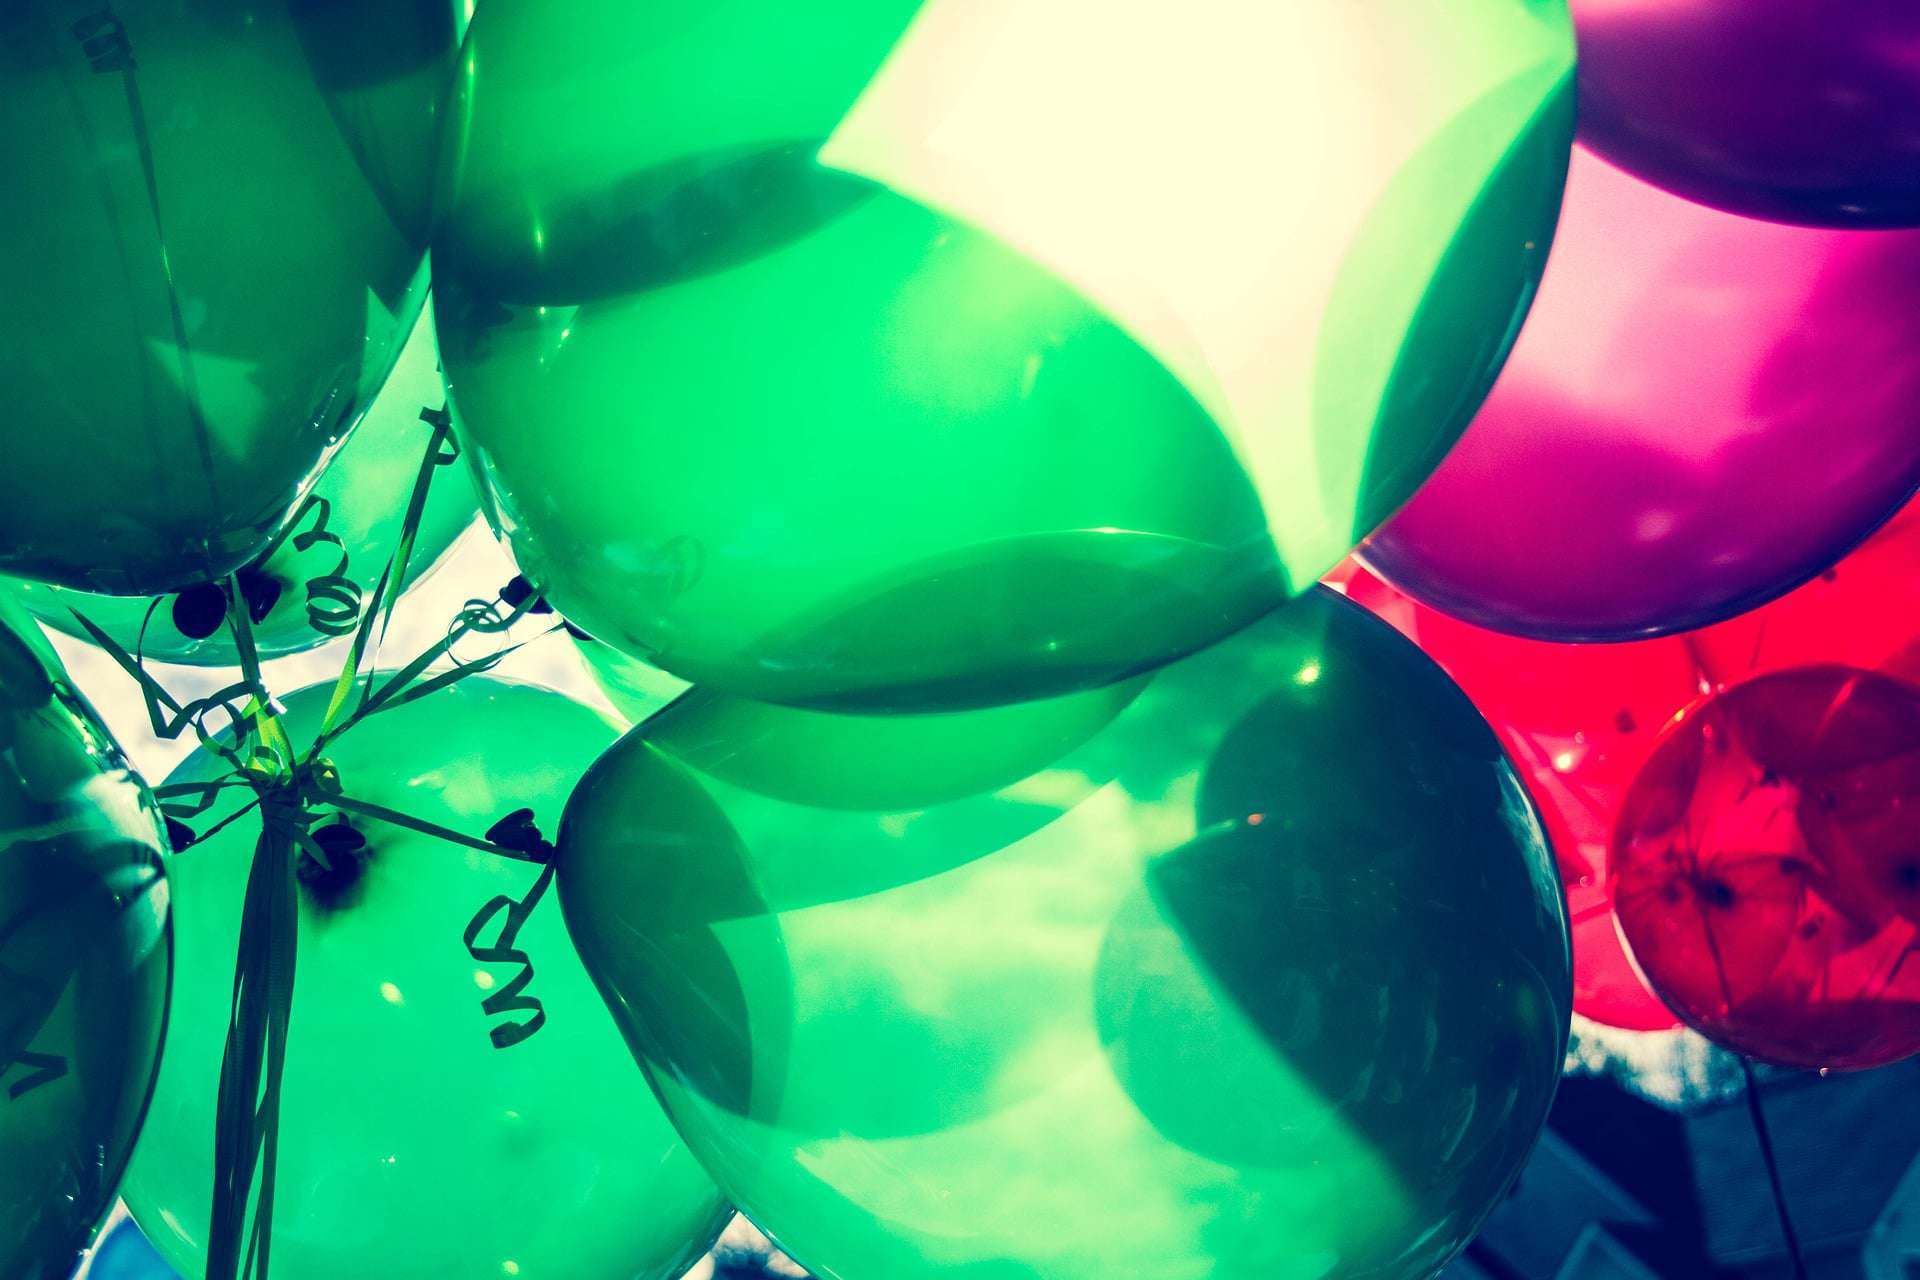 balloon avalanches are just one of the easiest surprise birthday party ideas